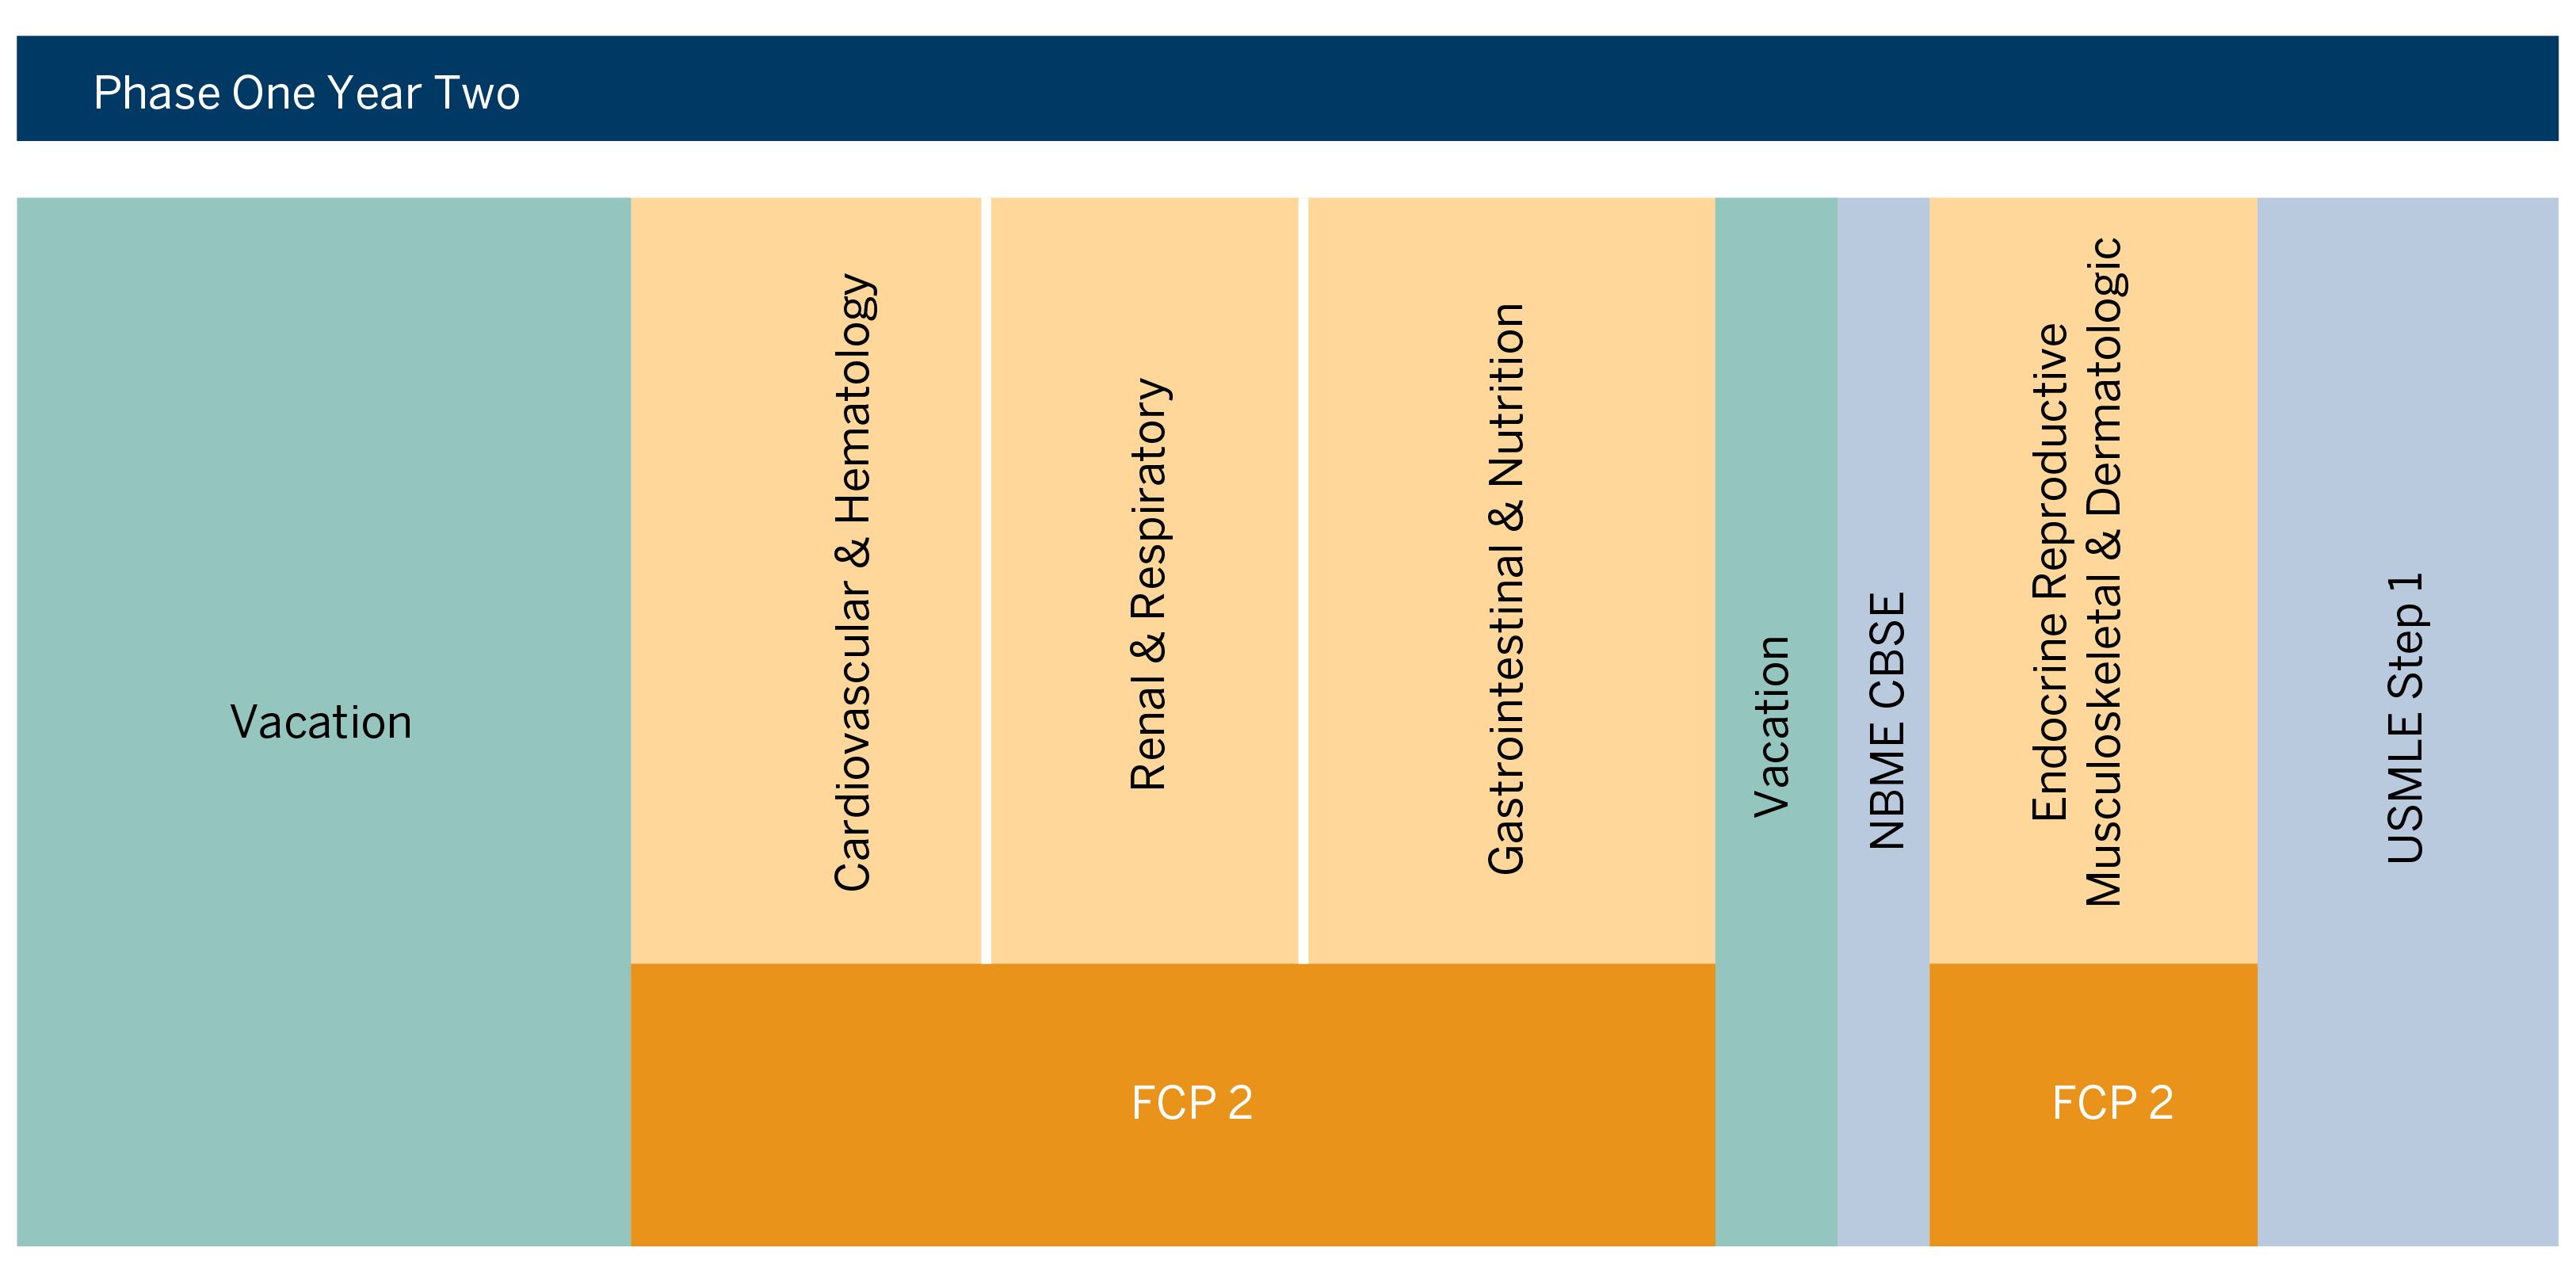 MD Curriculum Phase 1 - Year 2